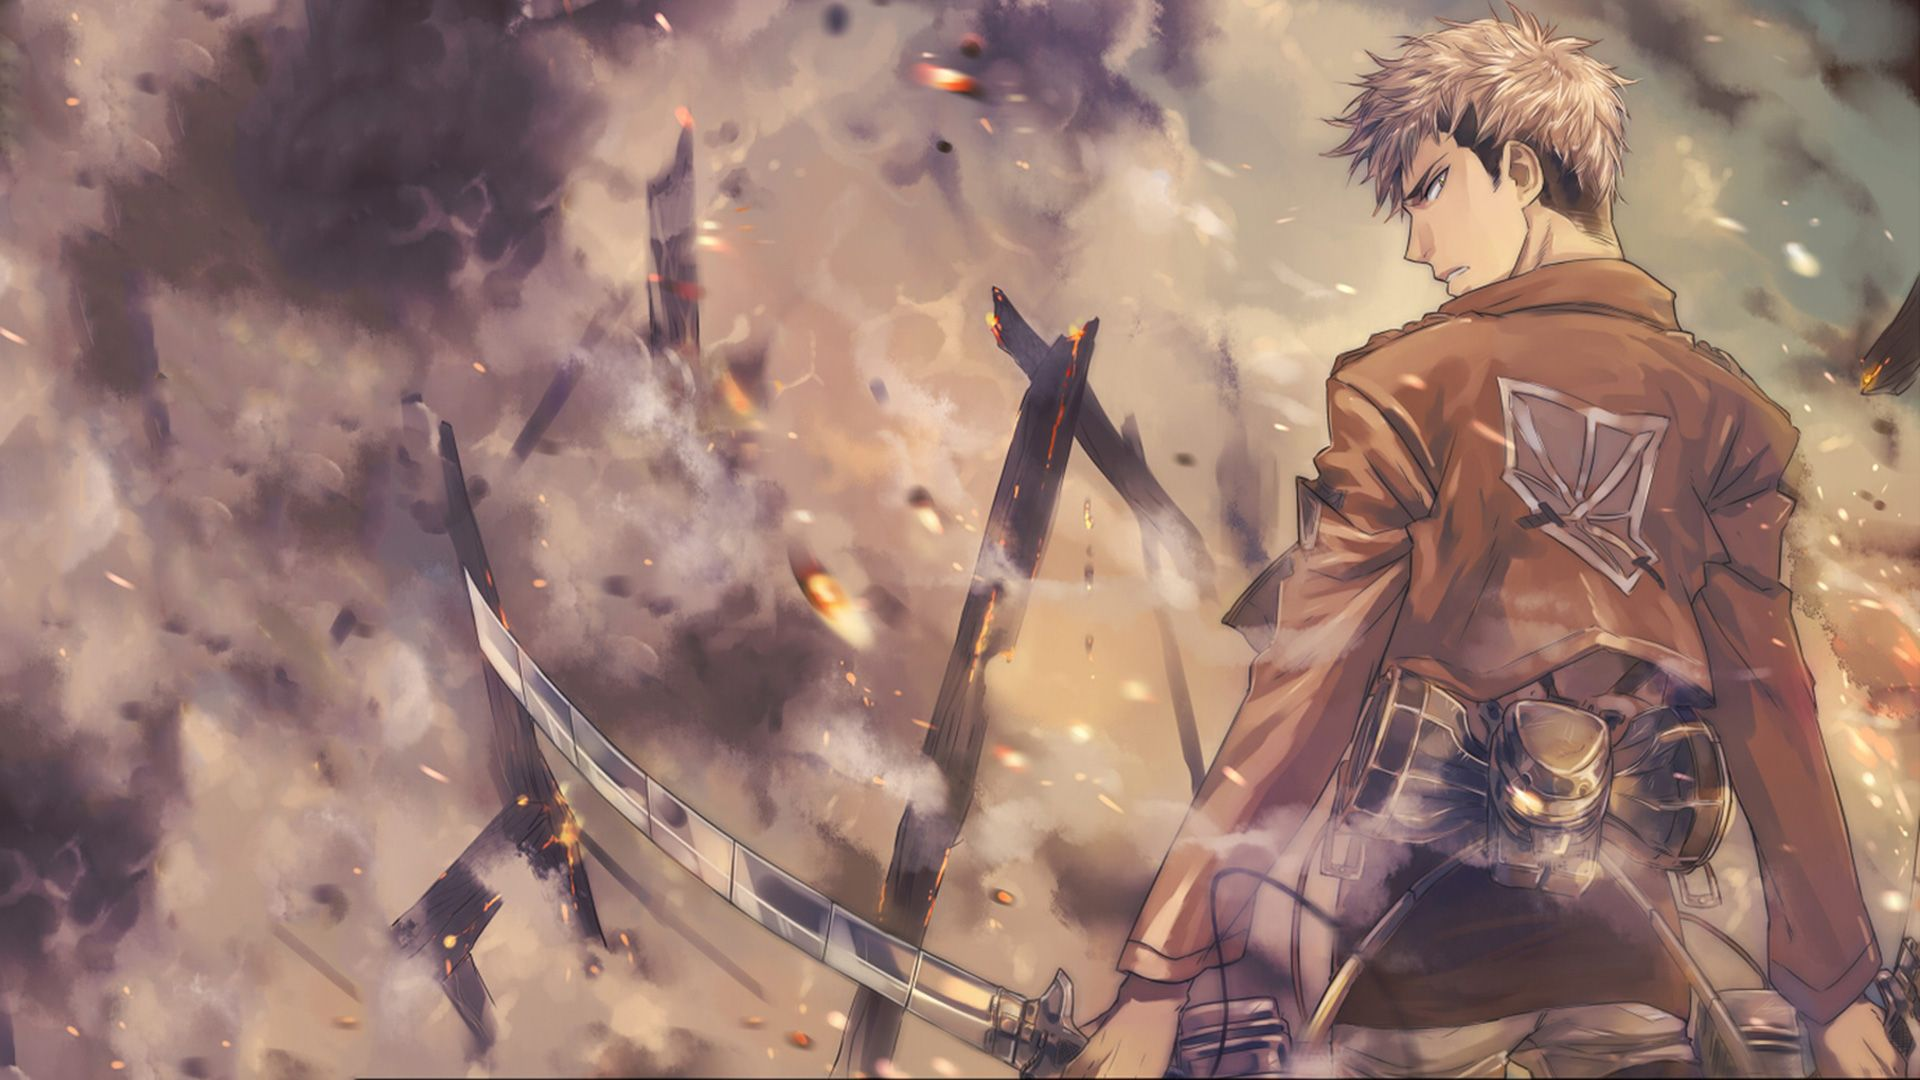 Shingeki No Kyojin Jean Kirstein Computer Wallpapers Desktop Backgrounds 1920x1080 Id 607875 Attack On Titan Jean Attack On Titan Art Attack On Titan